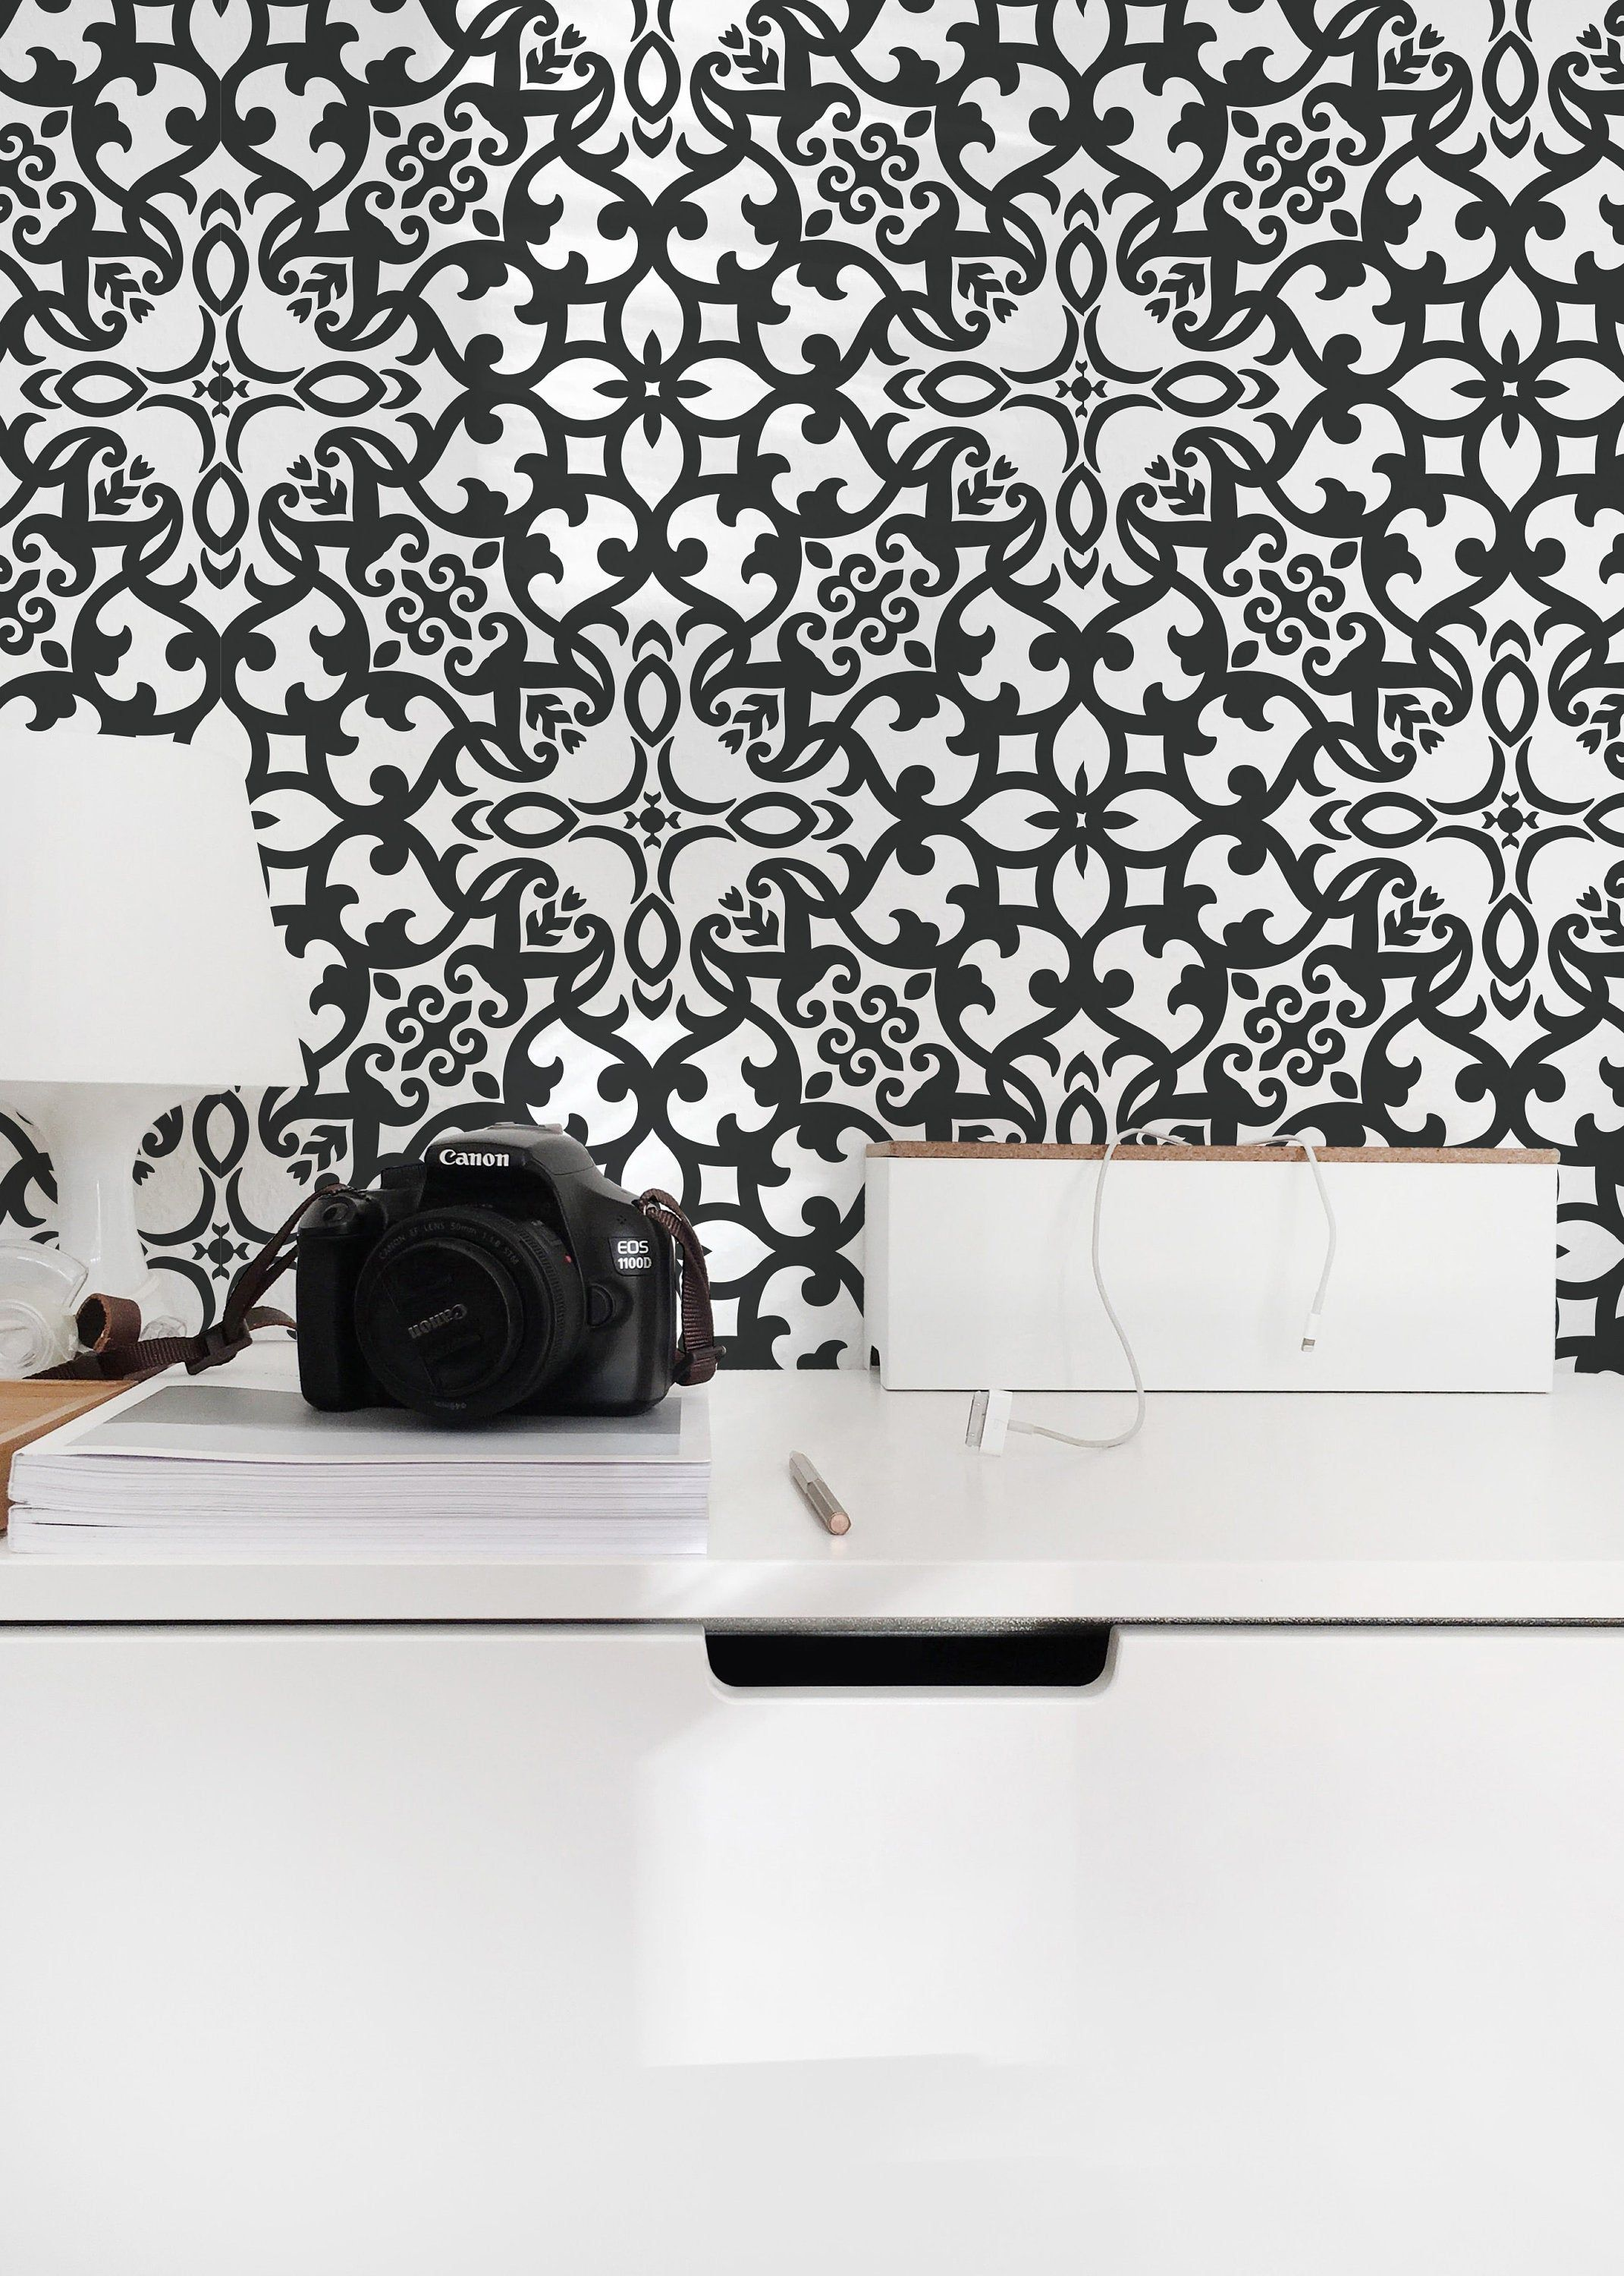 Eclectic Pattern Removable Wallpaper Design Black And White Etsy Removable Wallpaper Self Adhesive Wallpaper Honeycomb Wallpaper